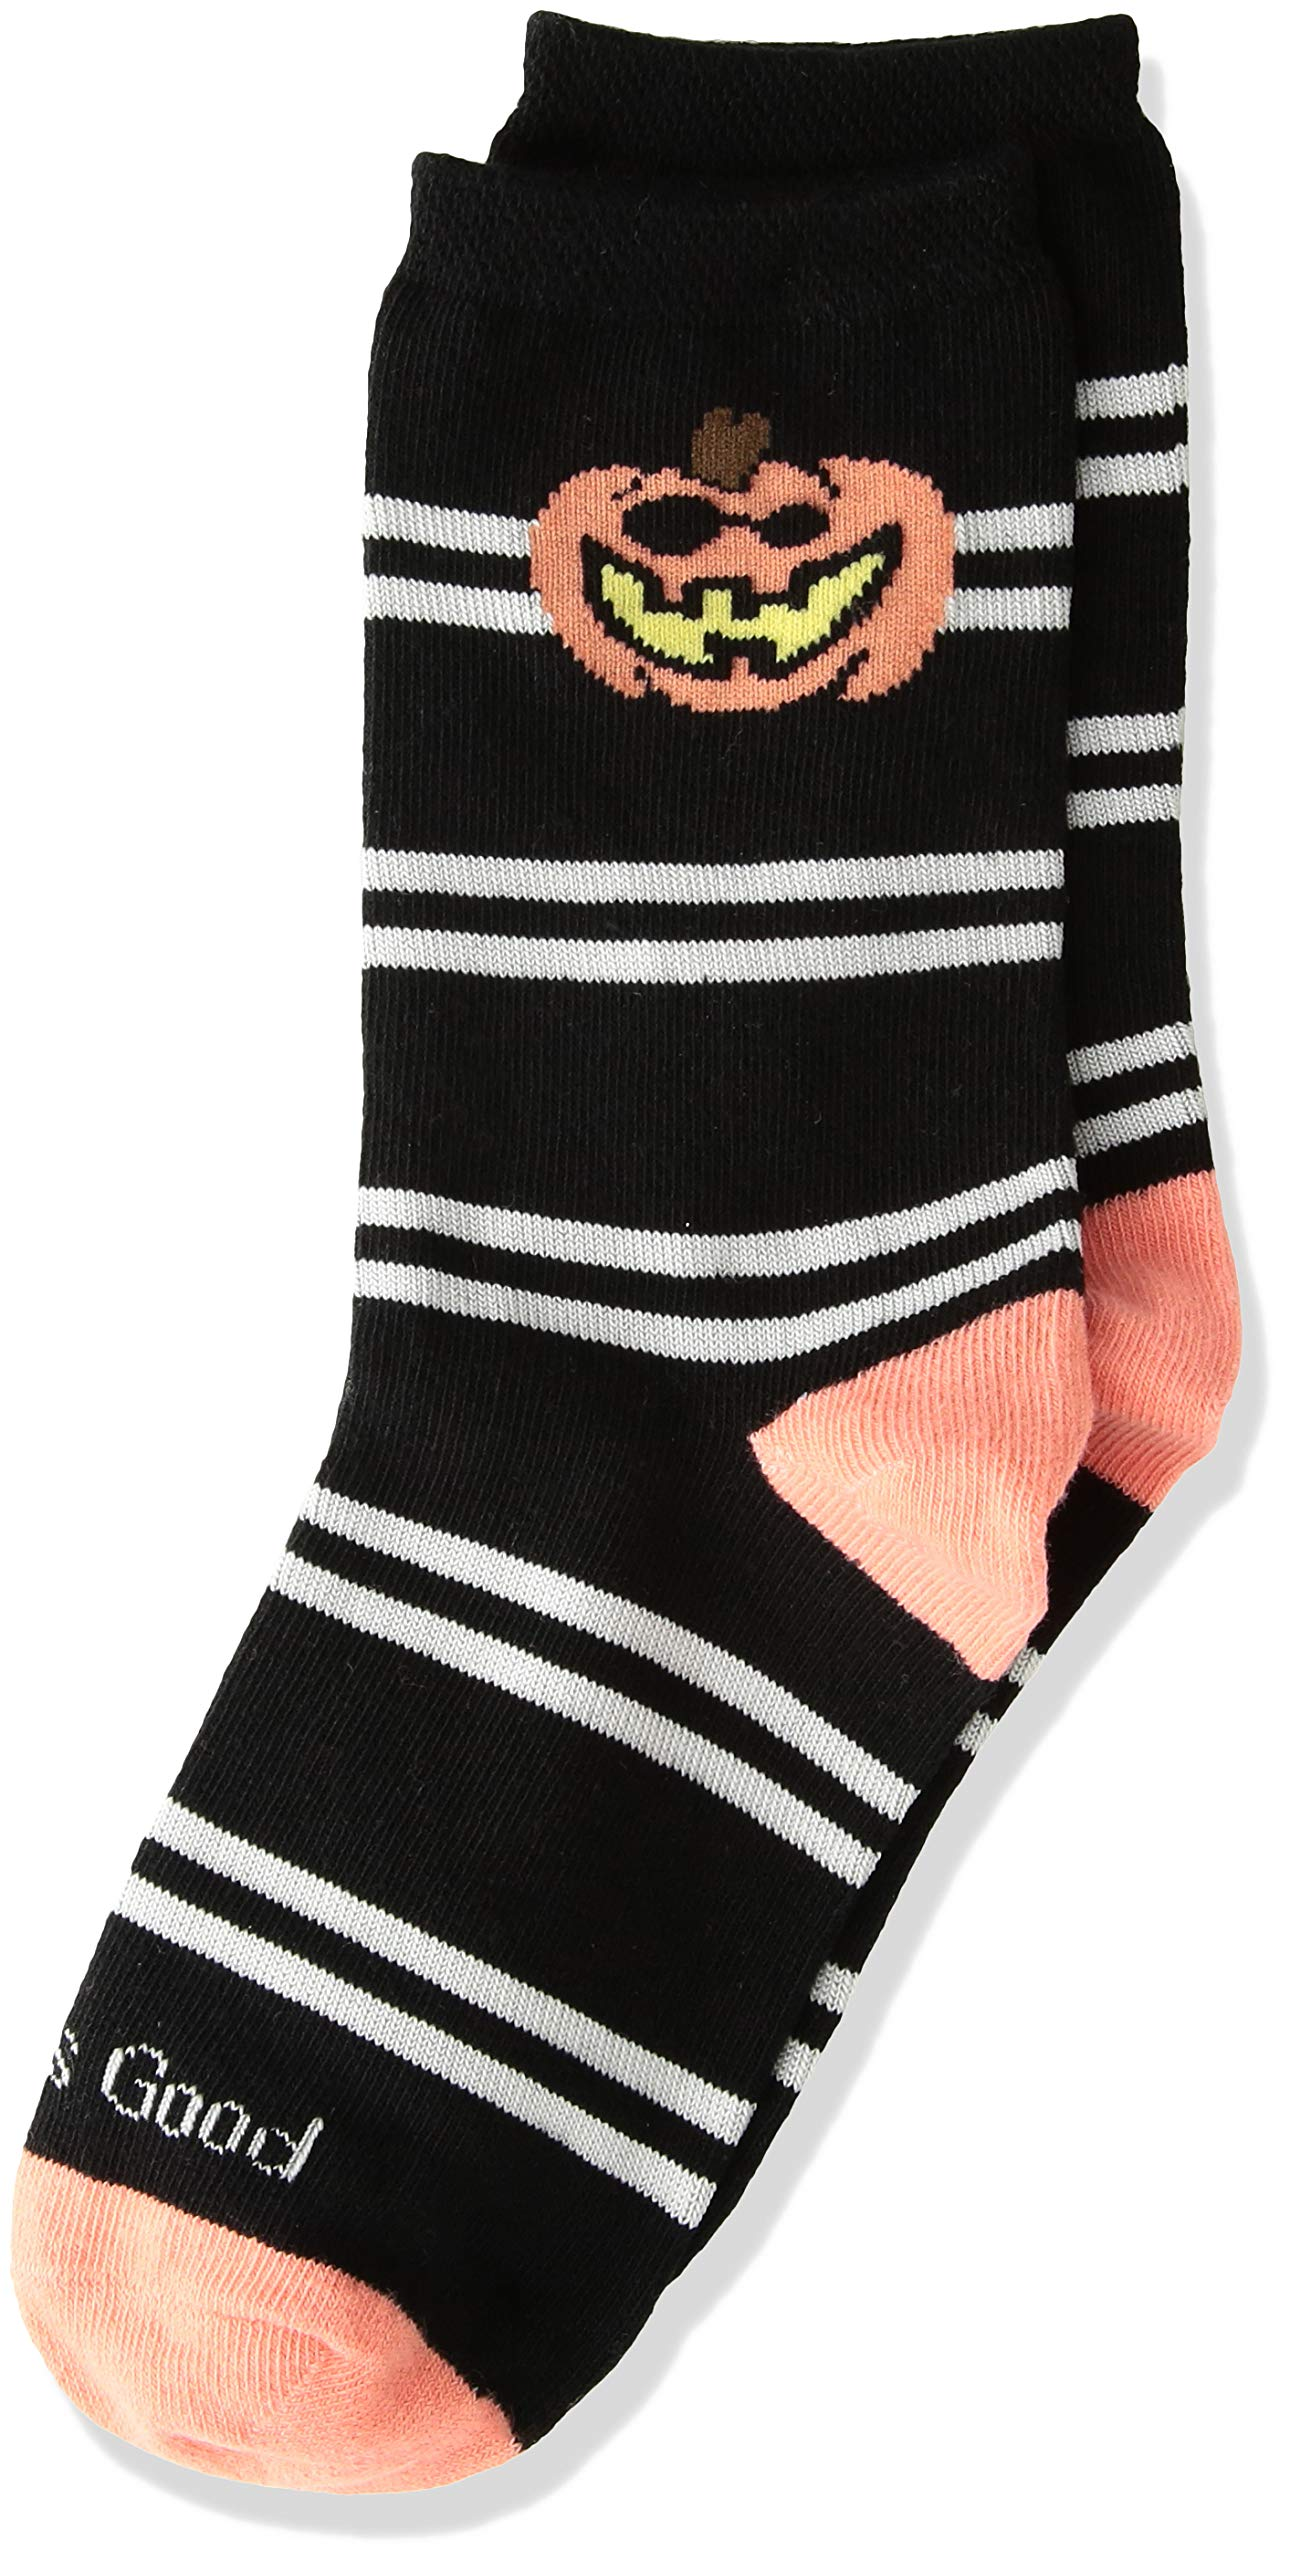 Life is Good Big Boys Crew Socks, Large (Fits Shoe Size 13-4), Pumpkin Black